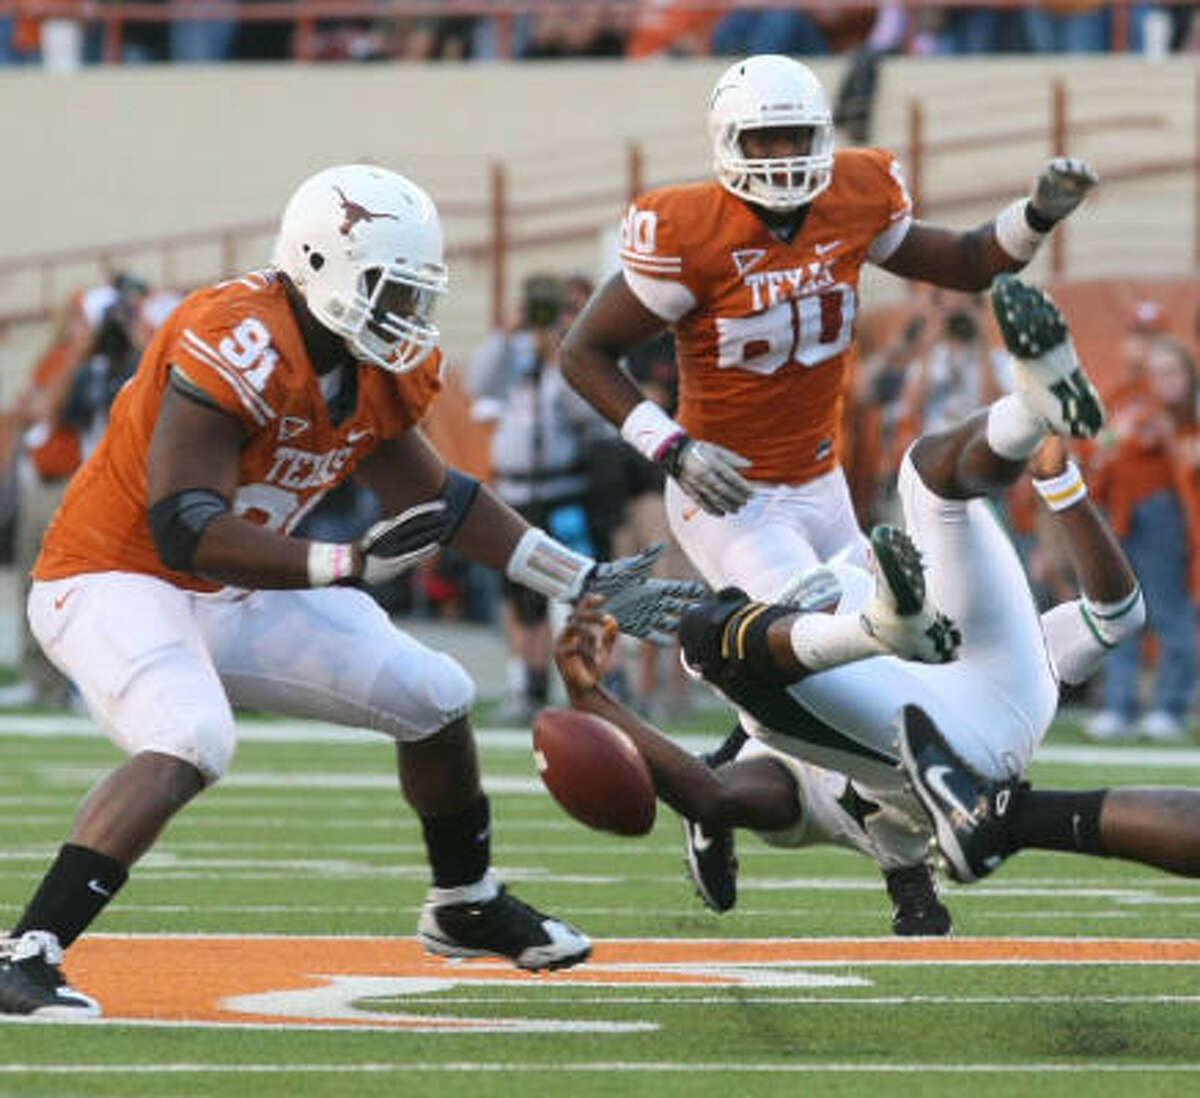 Baylor quarterback Robert Griffin III, right, fumbles near Texas defensive tackle Kheeston Randall (91) and Alex Okafor (80) during the first half.